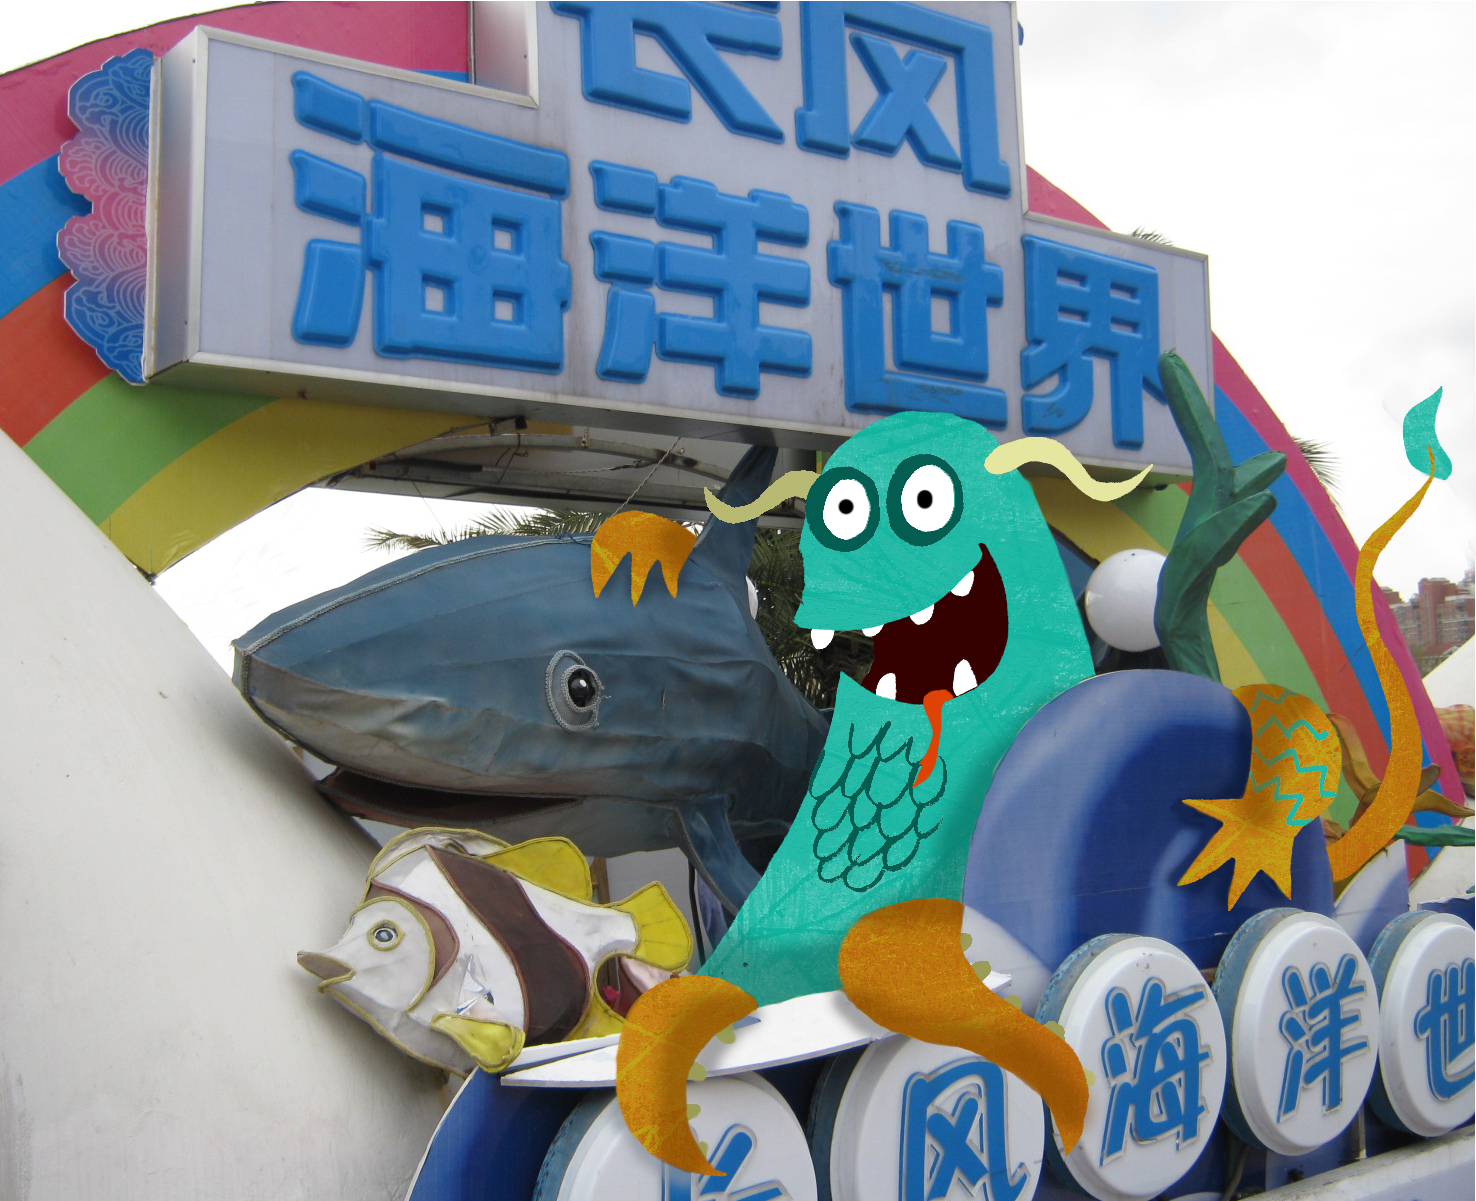 Leah-Ellen Heming/Shanghai Aquarium Monster